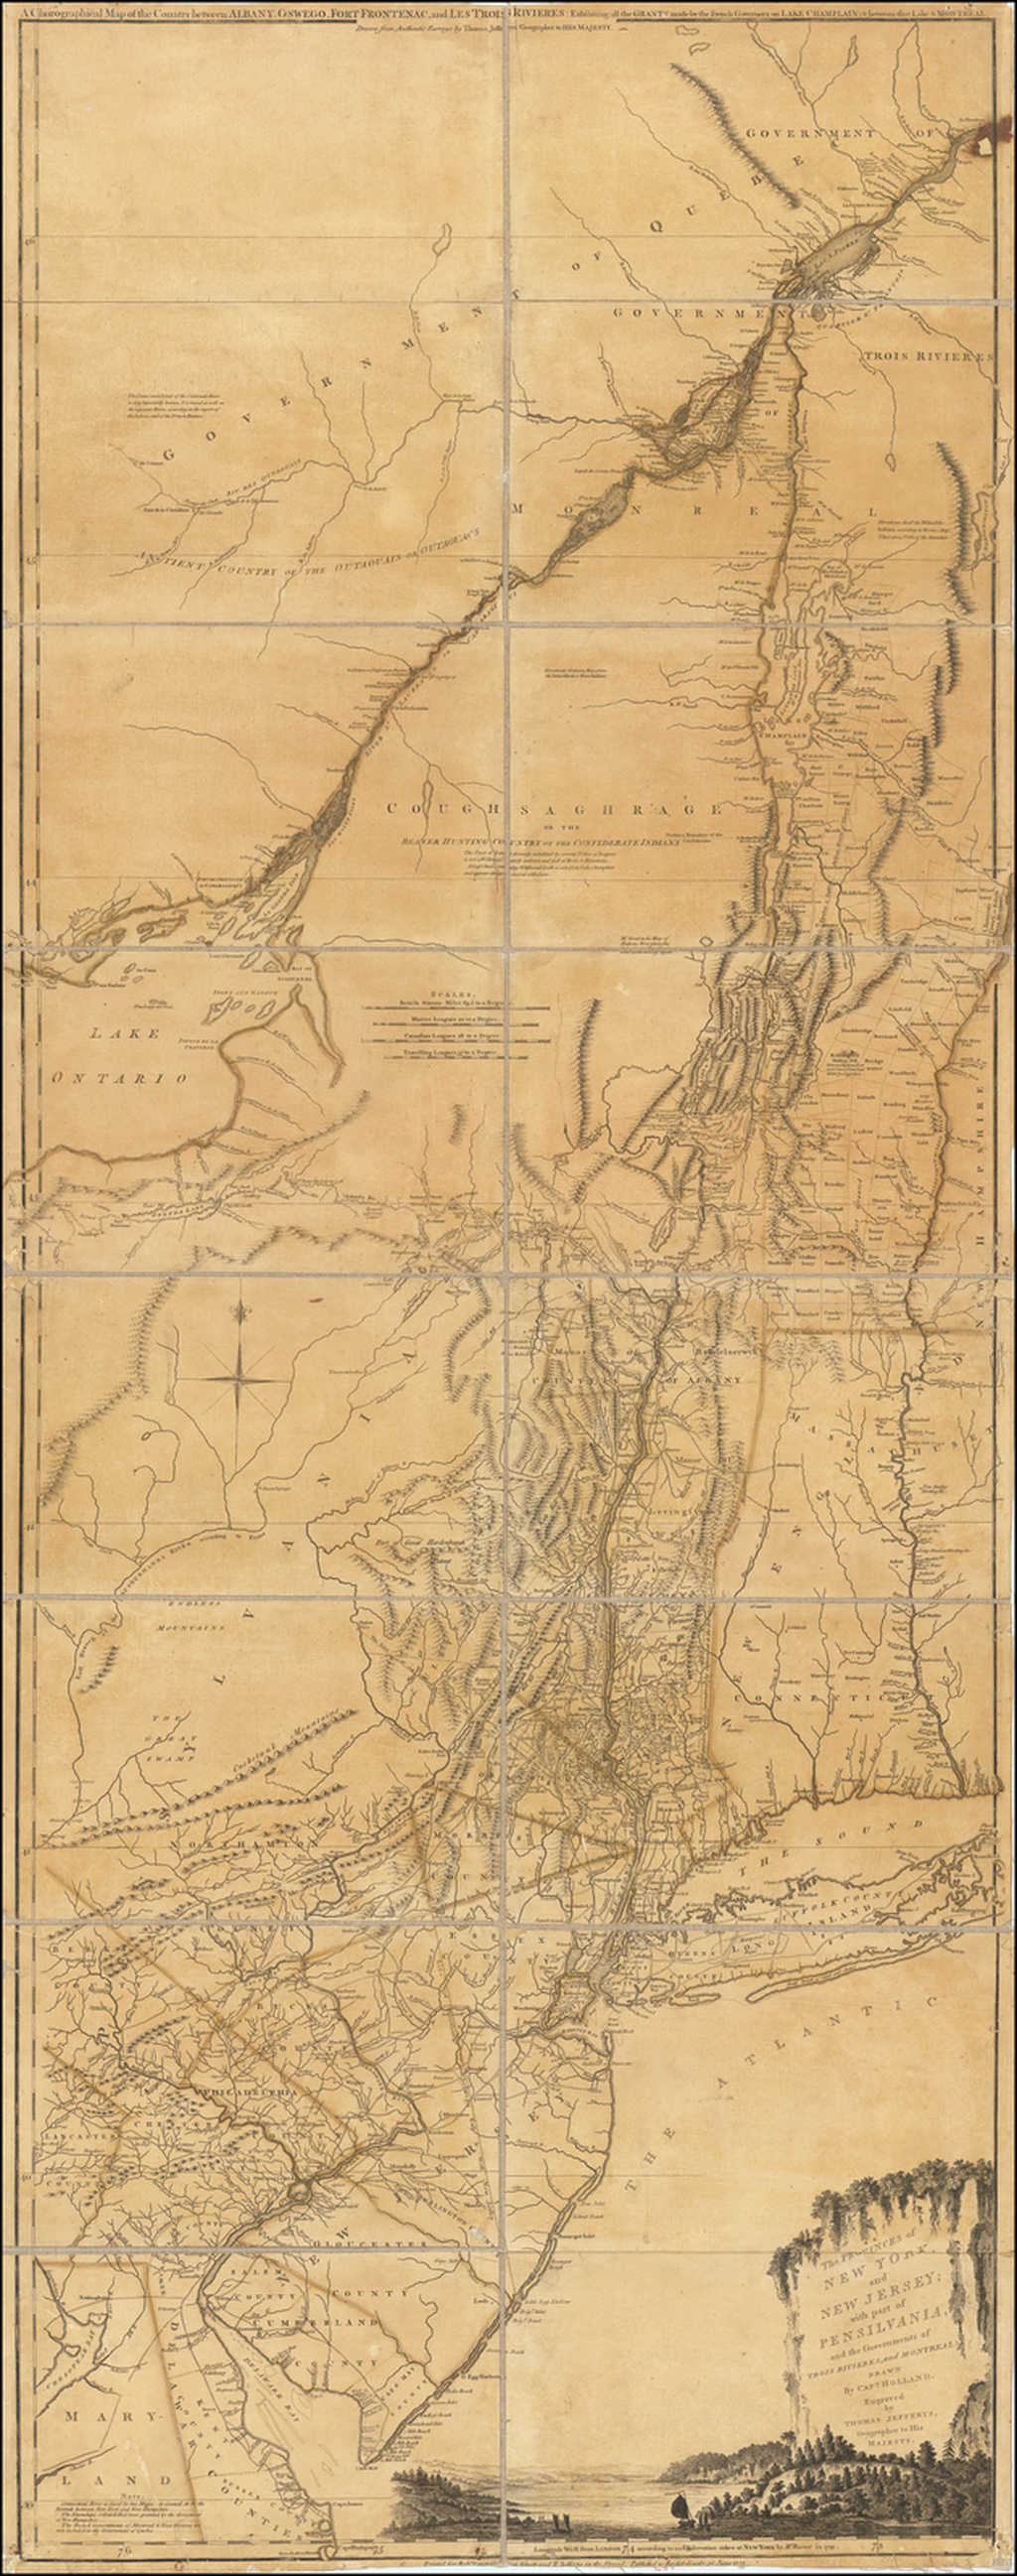 The Provinces of New York, and New Jersey; with part of Pensilvania, and the Governments of Trois Rivieres, and Montreal; Drawn by Capt. Holland. Engraved by Thomas Jefferys, Geographer to His Majest. By Sayer & Bennett